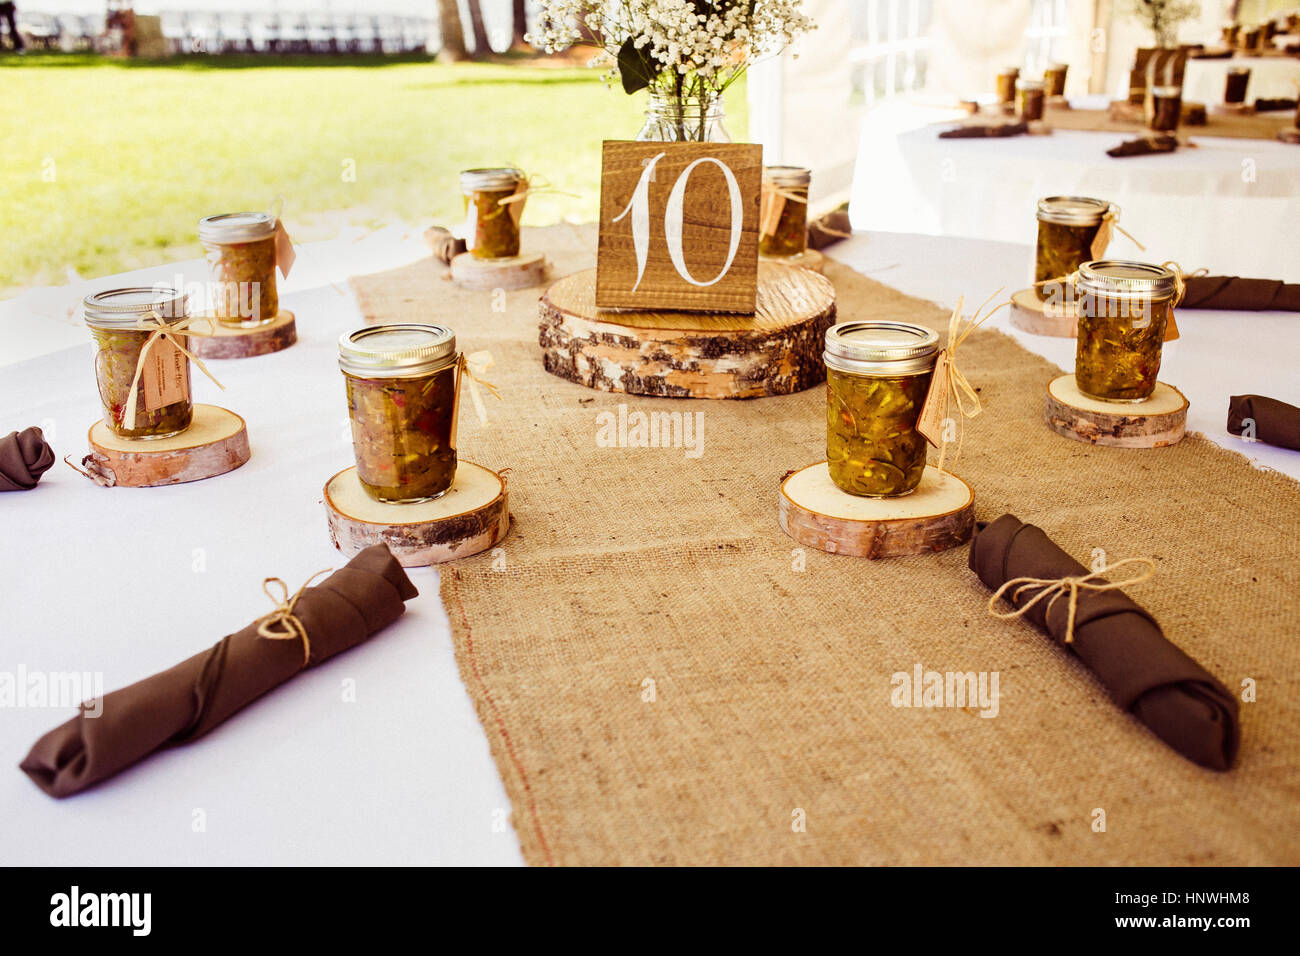 Wedding table with rustic place settings, outdoors - Stock Image